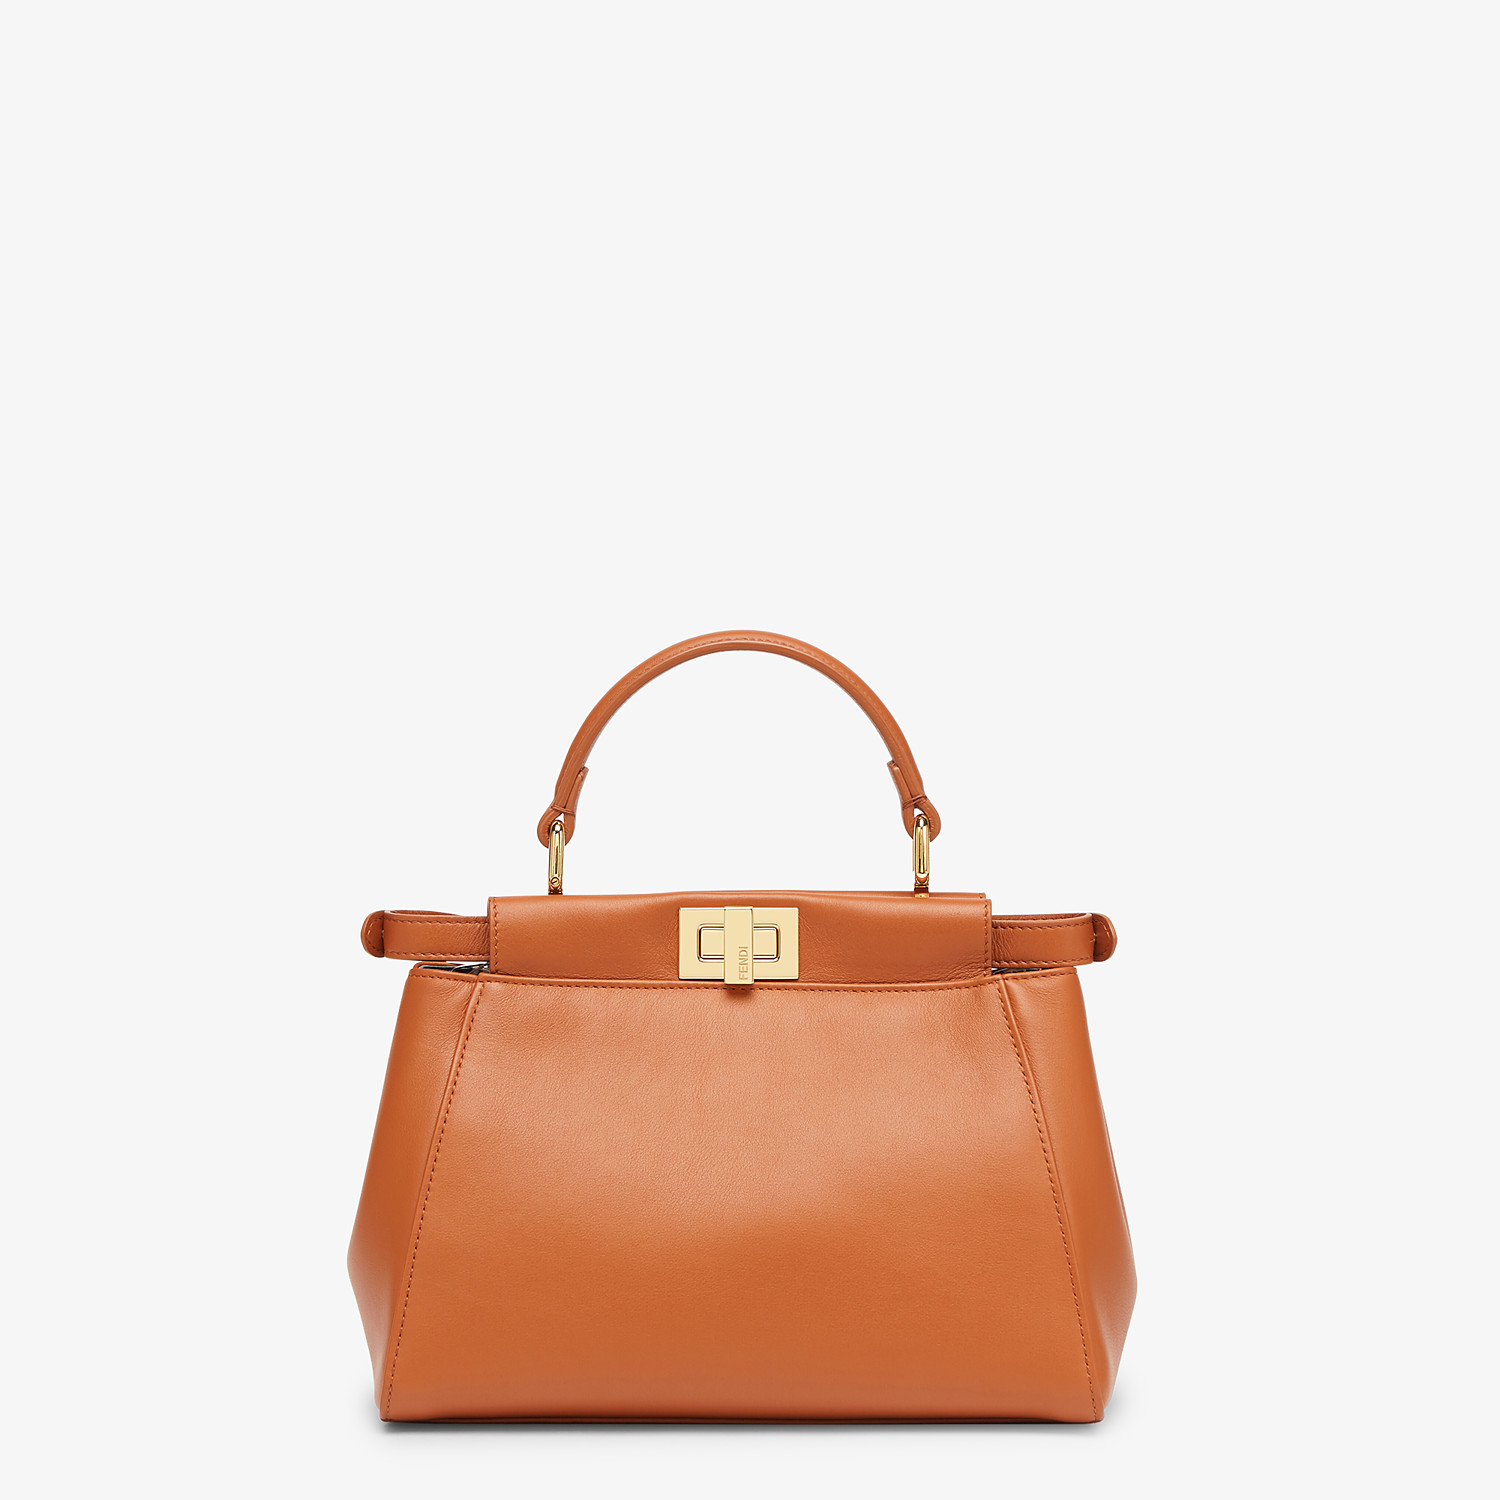 FENDI PEEKABOO ICONIC MINI - Brown nappa leather bag - view 4 detail